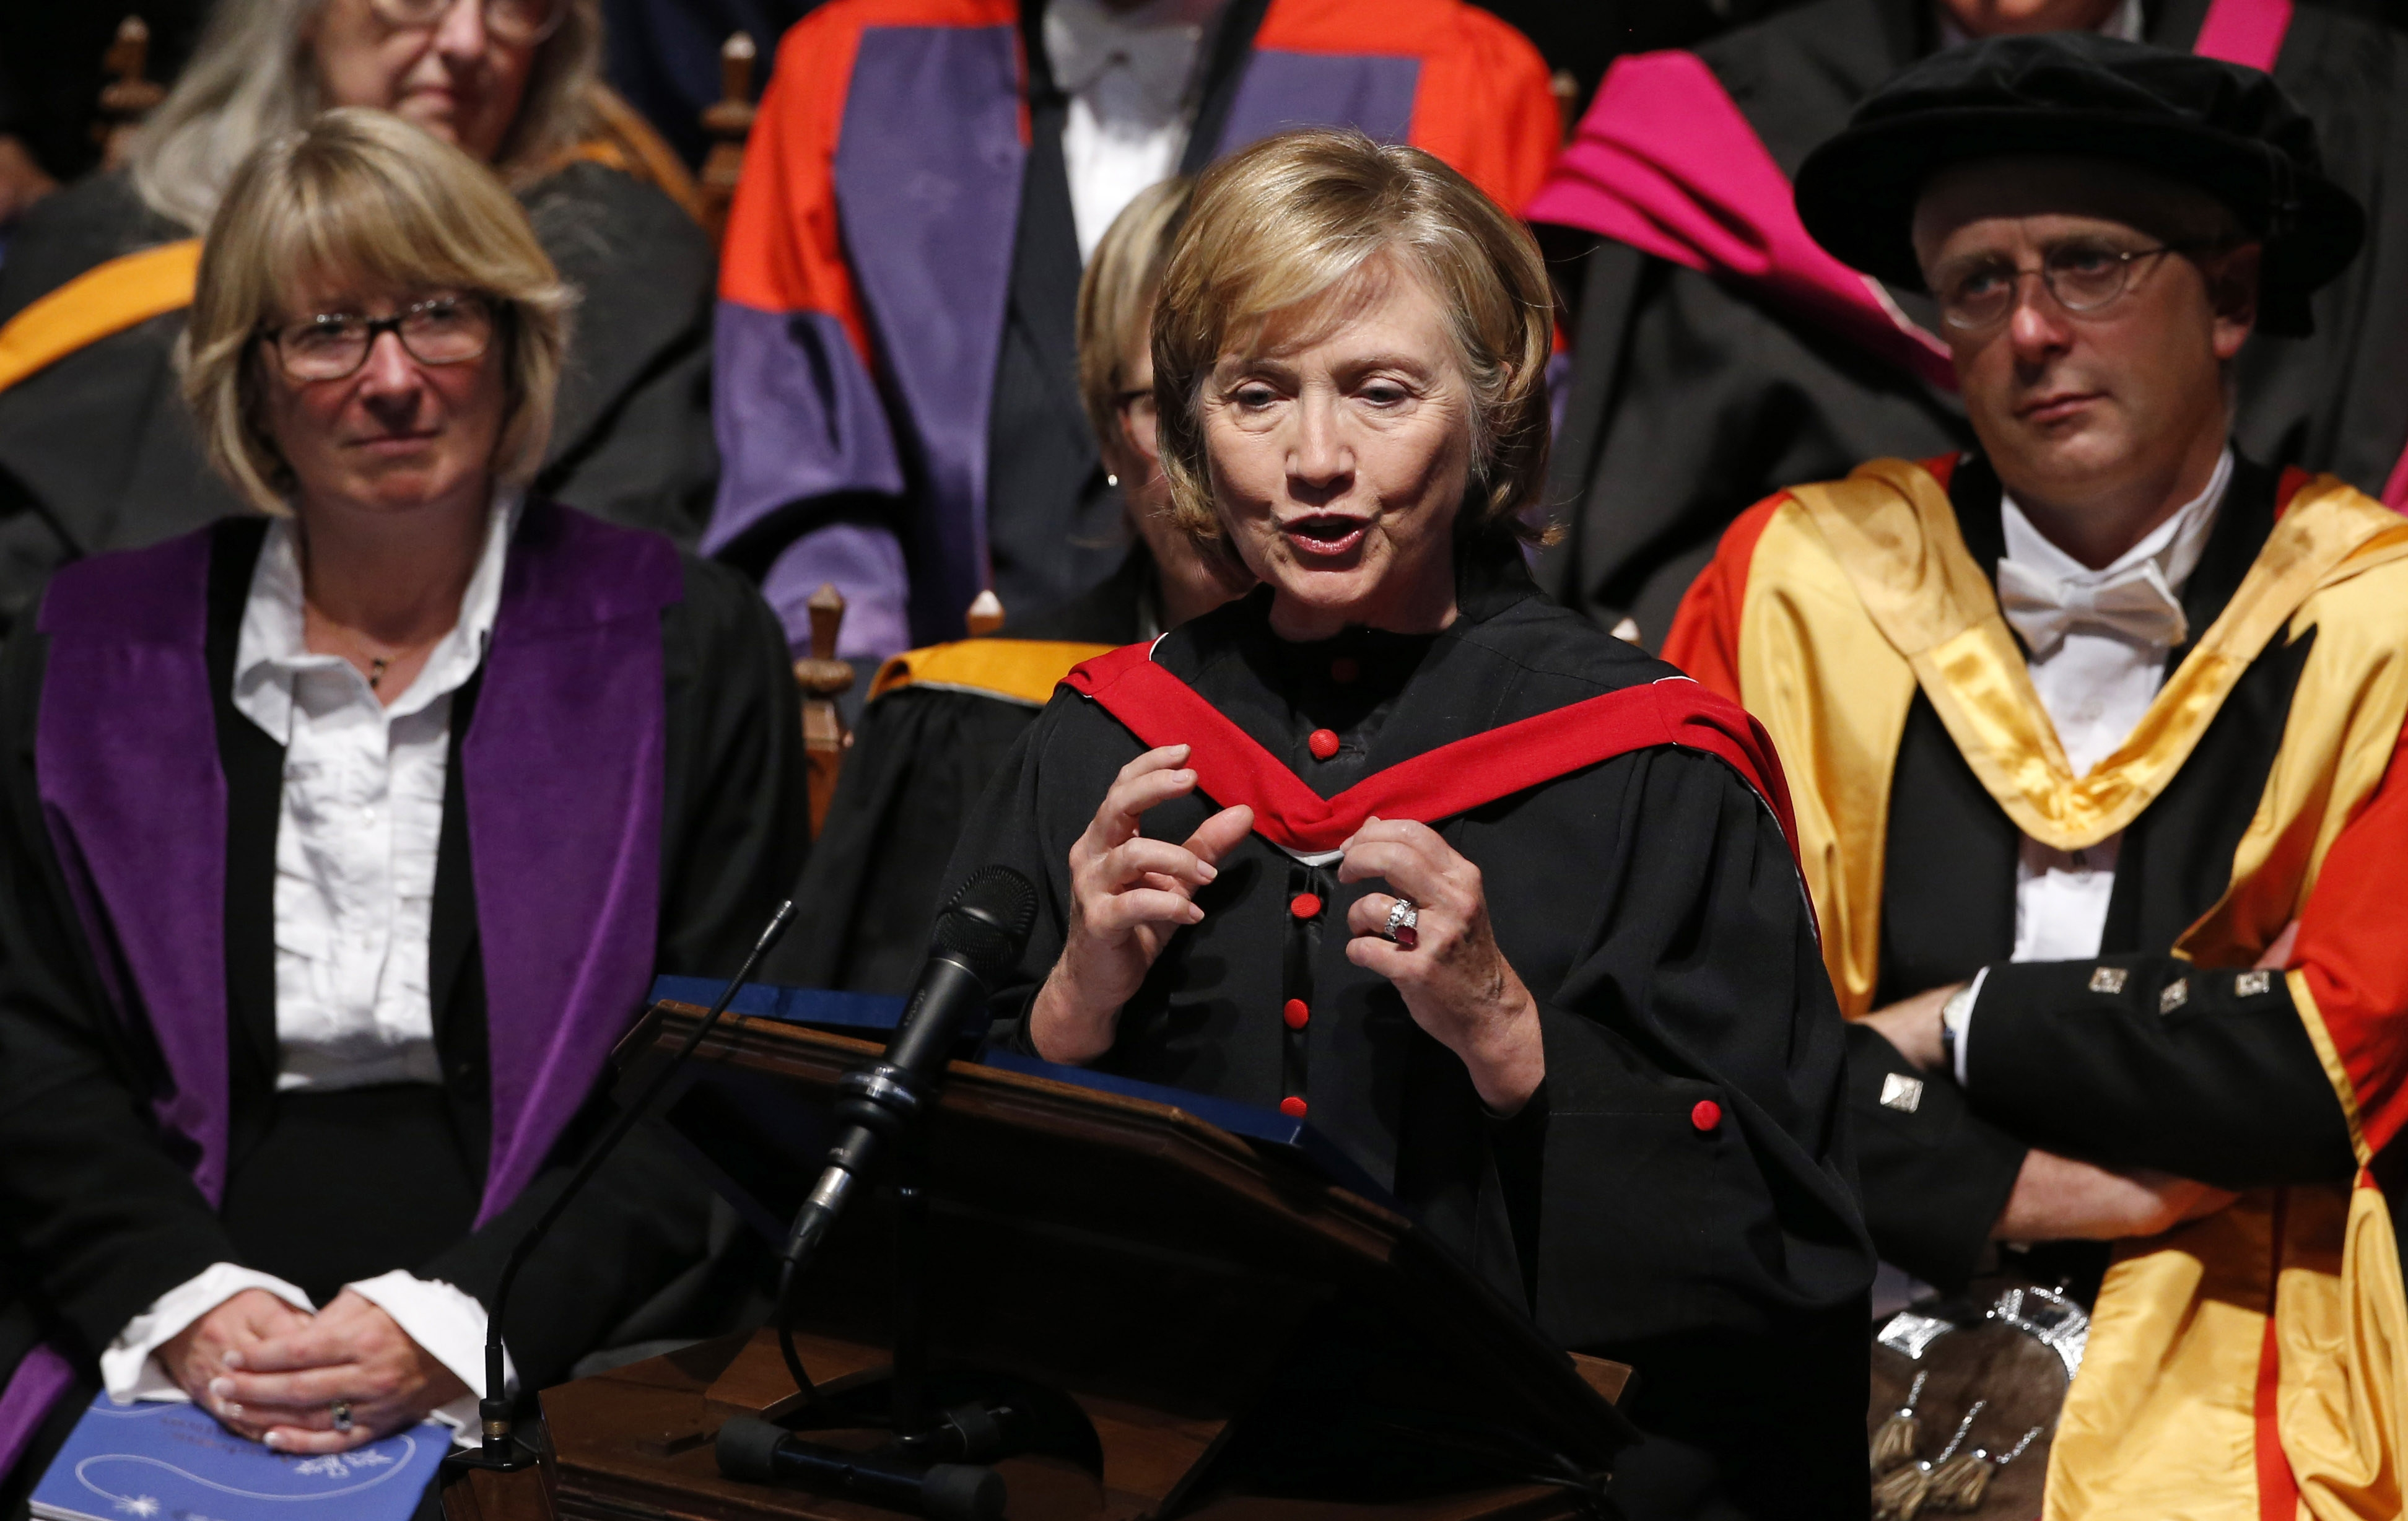 A Scottish sheepskin: Former Secretary of State Hillary Clinton was in Scotland Friday,addressing graduates of St Andrew's University. She received an honorary doctor of law degree.